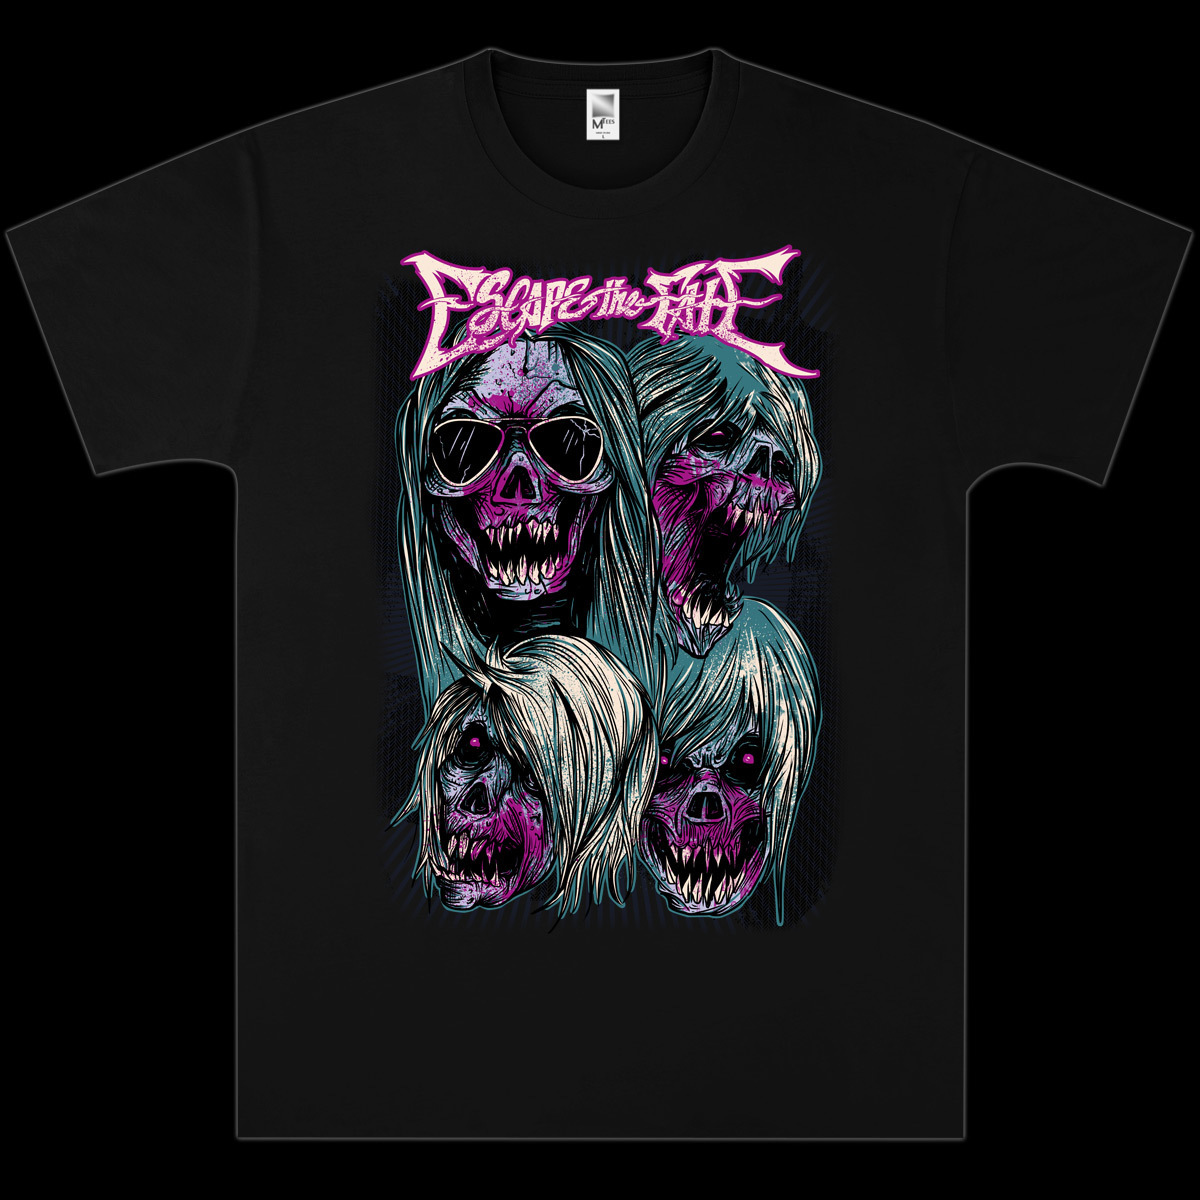 Escape the Fate Escape A.D. T-Shirt